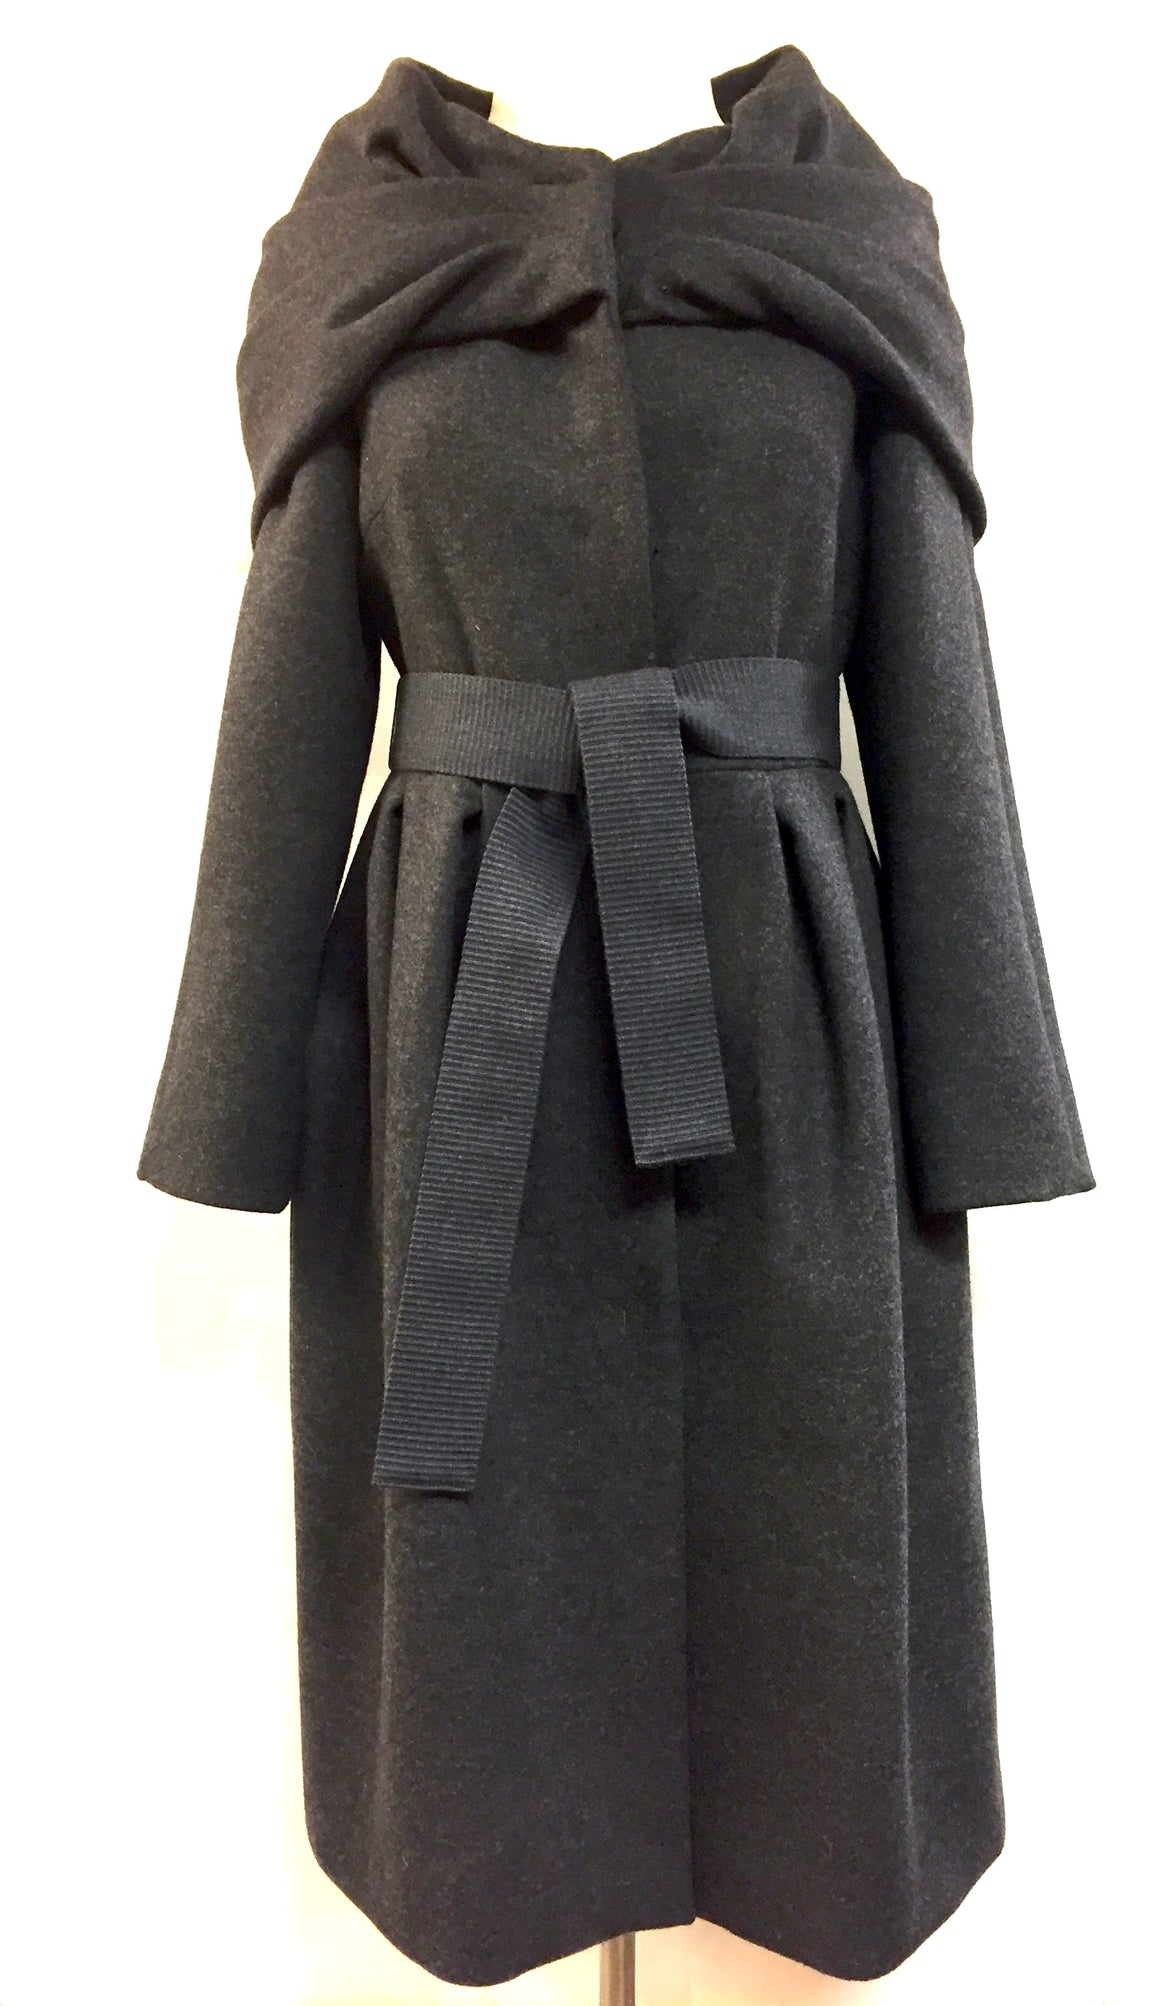 MAX MARA  Charcoal Wool/Angora Belted Coat with Large Collar/Hood  Size: 4